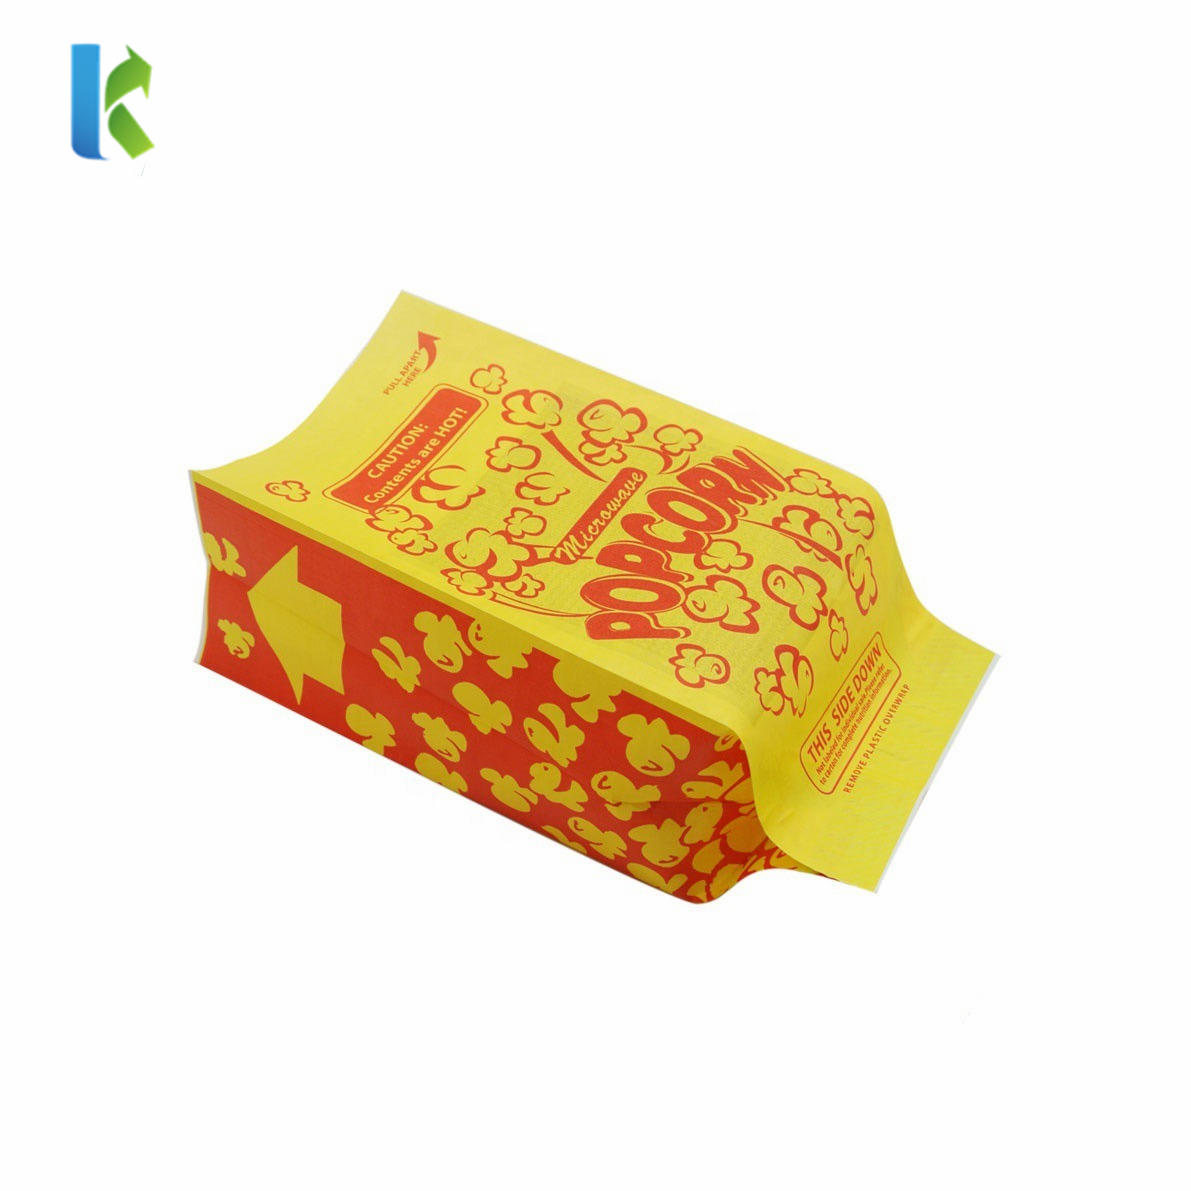 Microondas New Sealable Large Para Bolso Logo Corn Bulk Wholesale Craft Paper Popcorn Bag